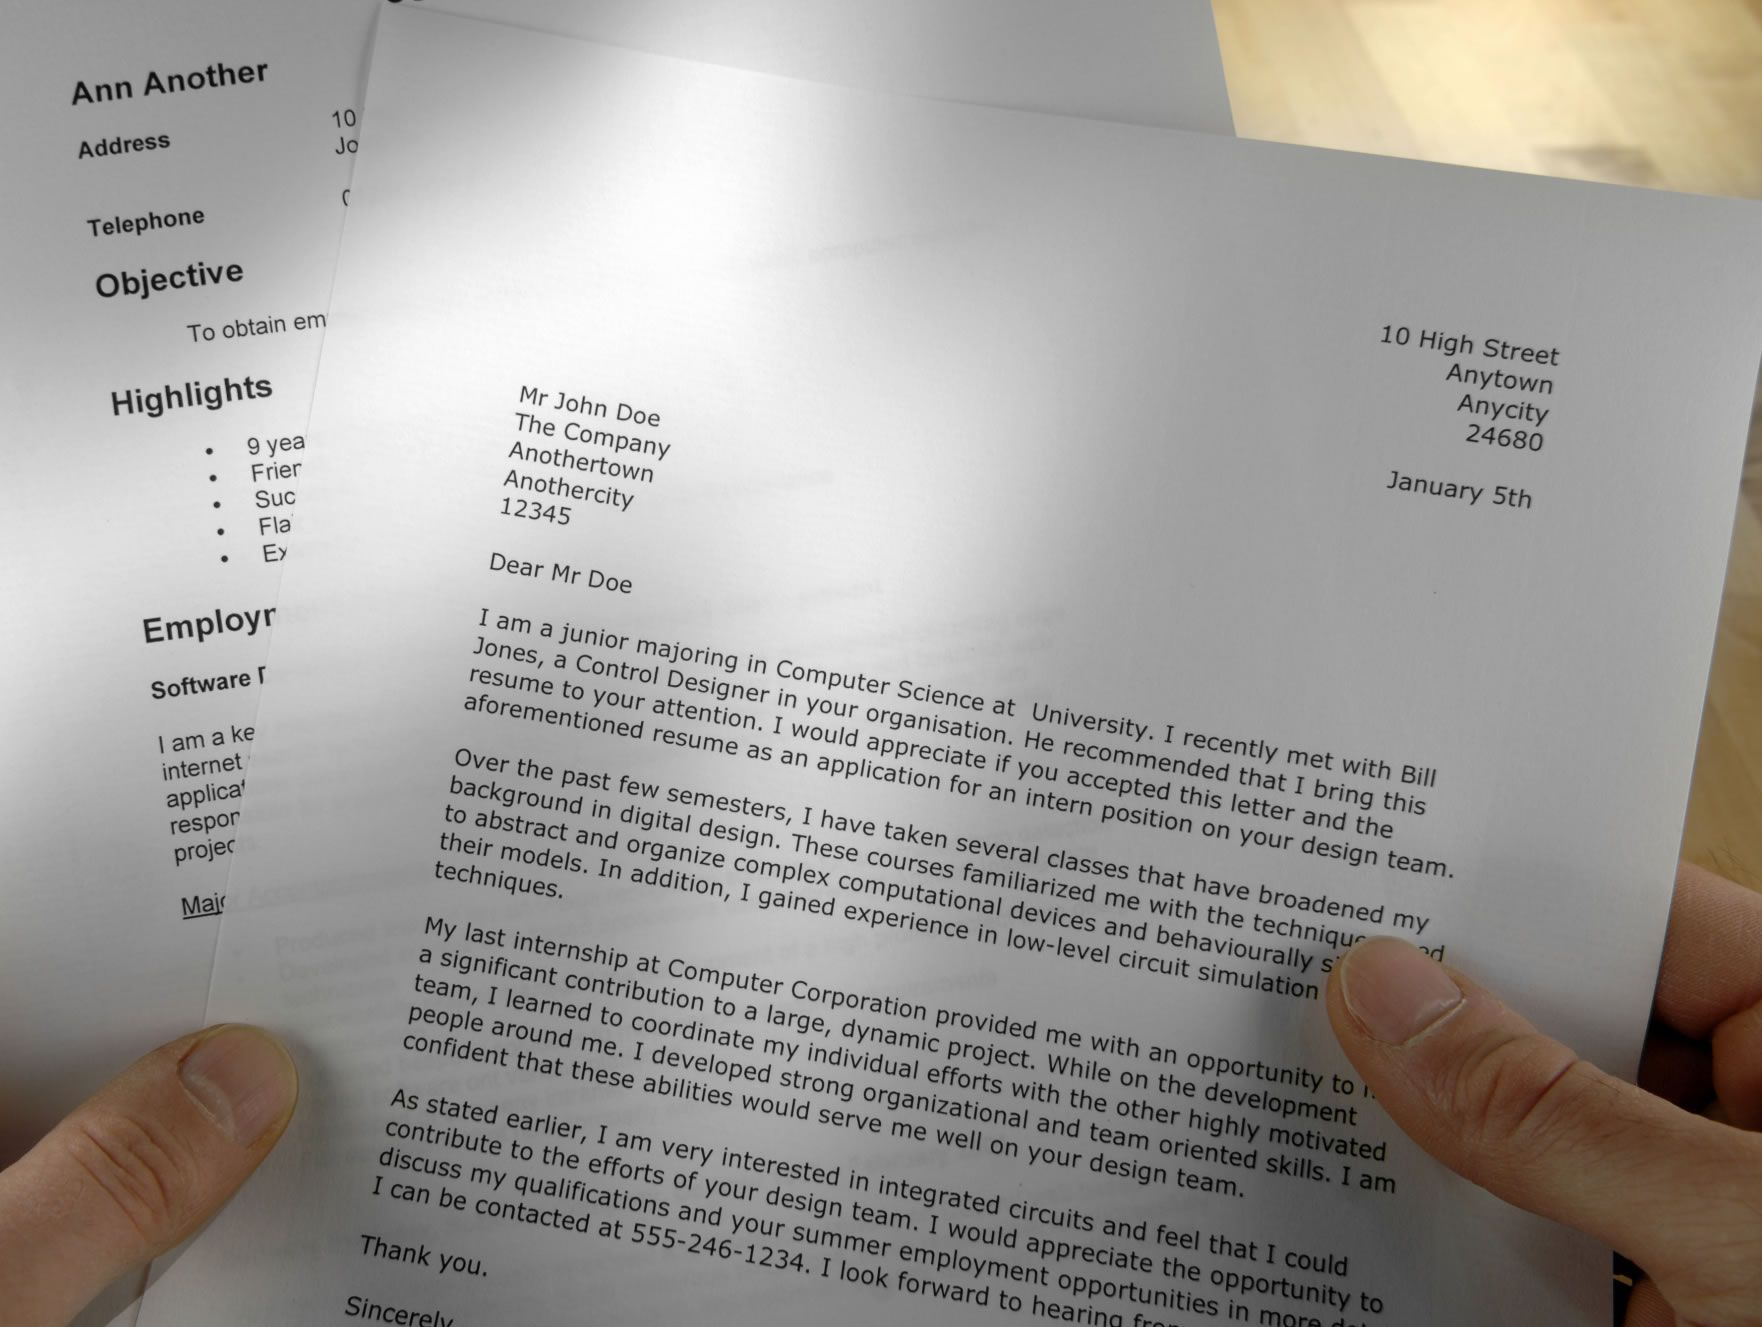 Sample Cover Letter for Your Resume | Cover letter sample and Letter ...